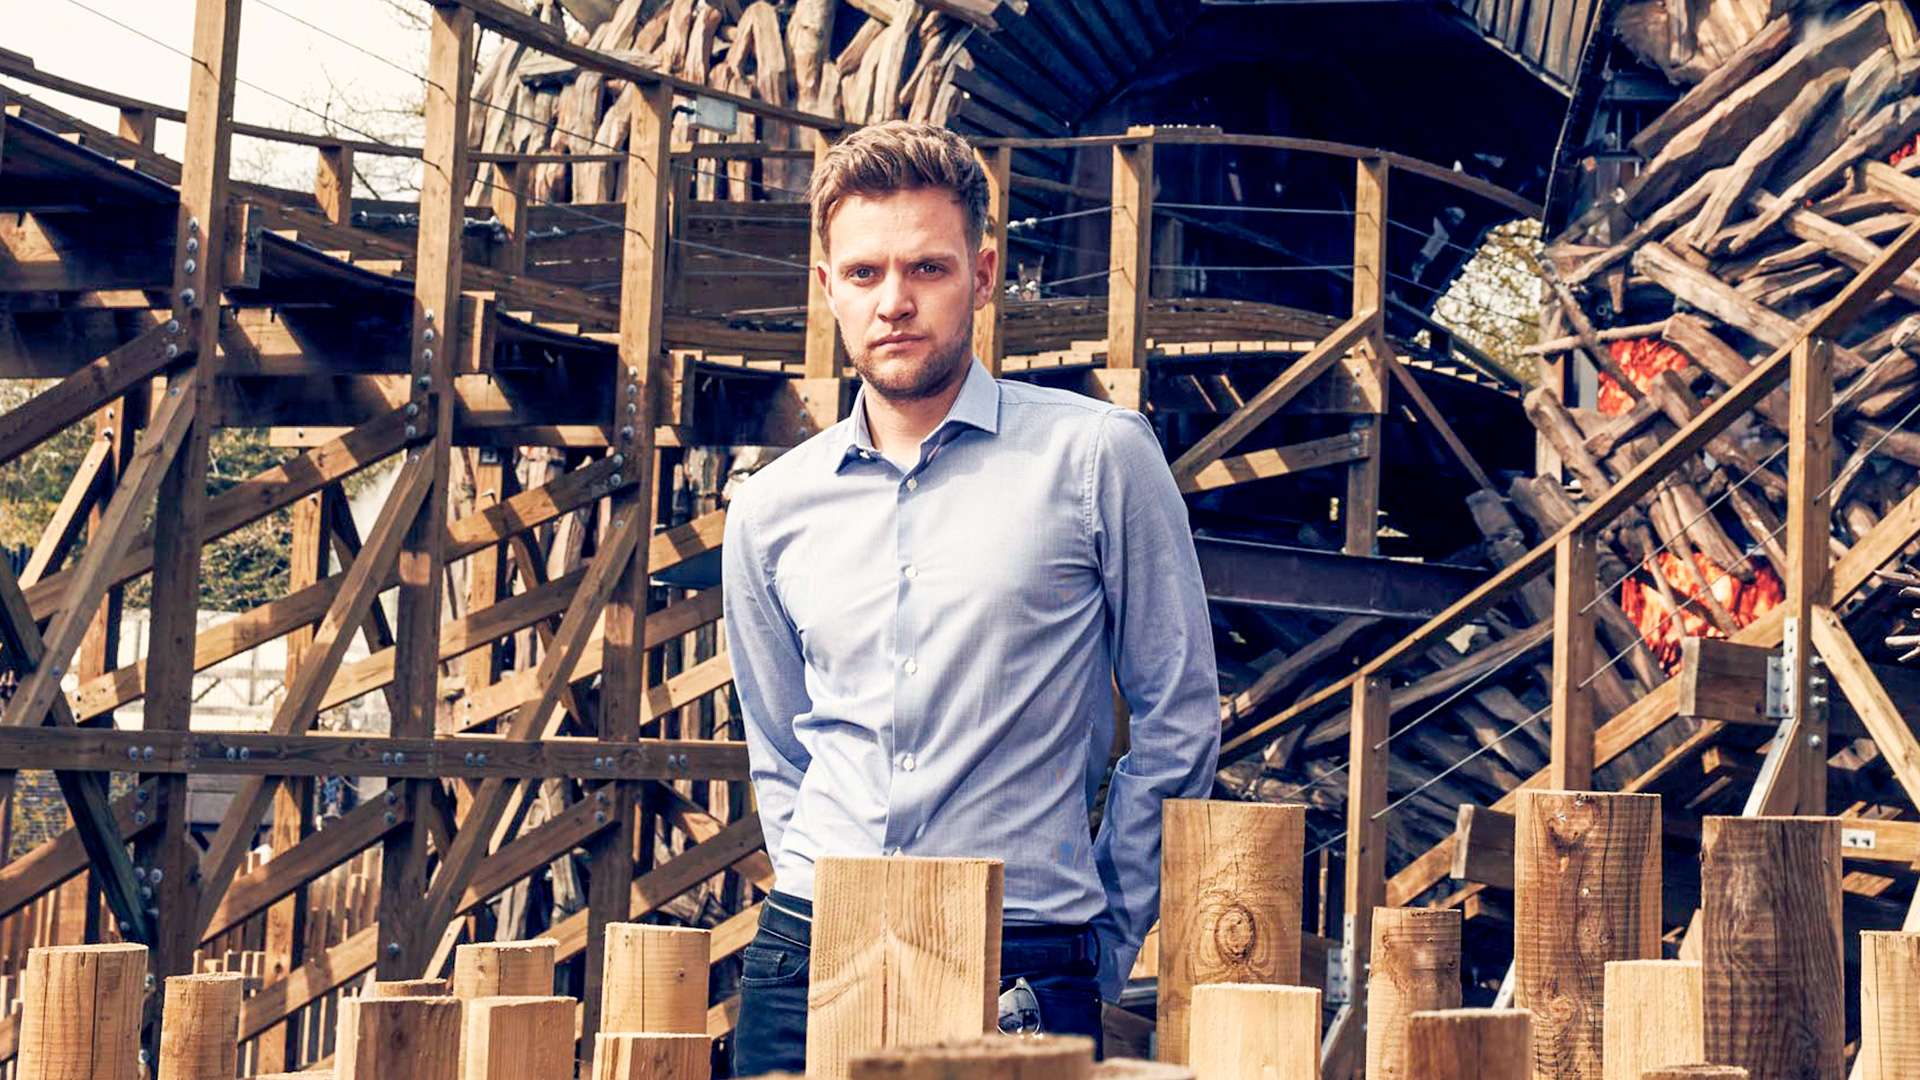 Max Mayer with the Wicker Man - Inside Alton Towers - Image by Channel 4.